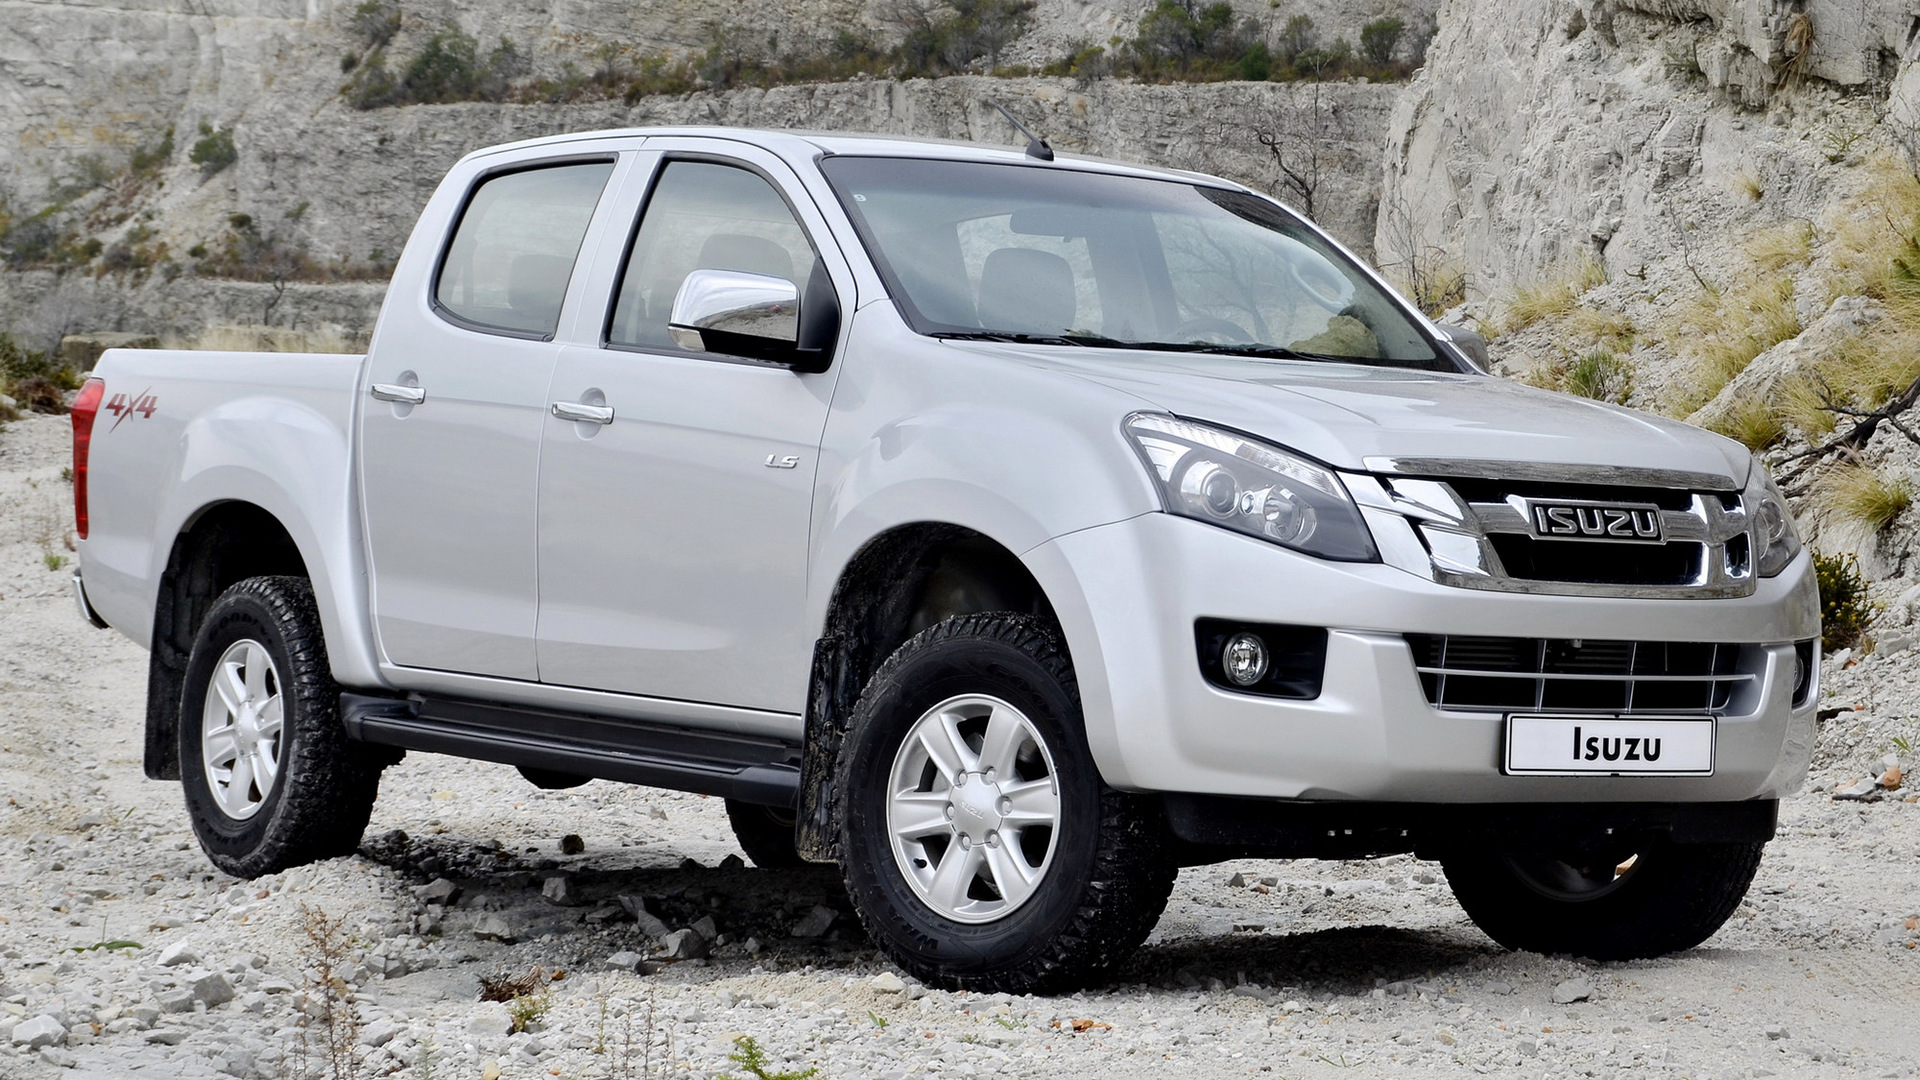 isuzu d max double cab 2012 wallpapers and hd images. Black Bedroom Furniture Sets. Home Design Ideas